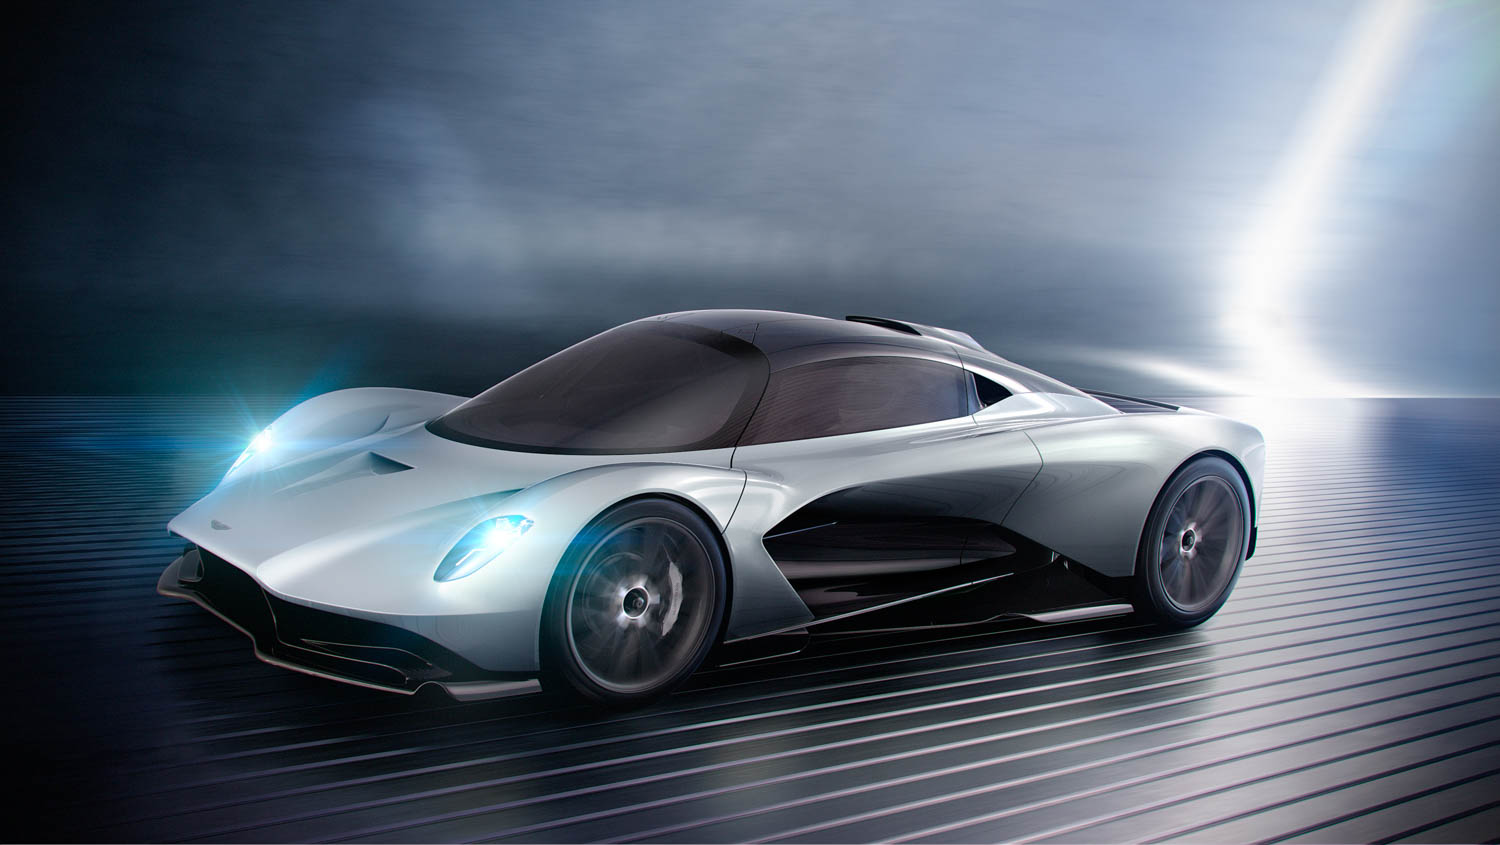 Aston Martin Project 003 front 3/4